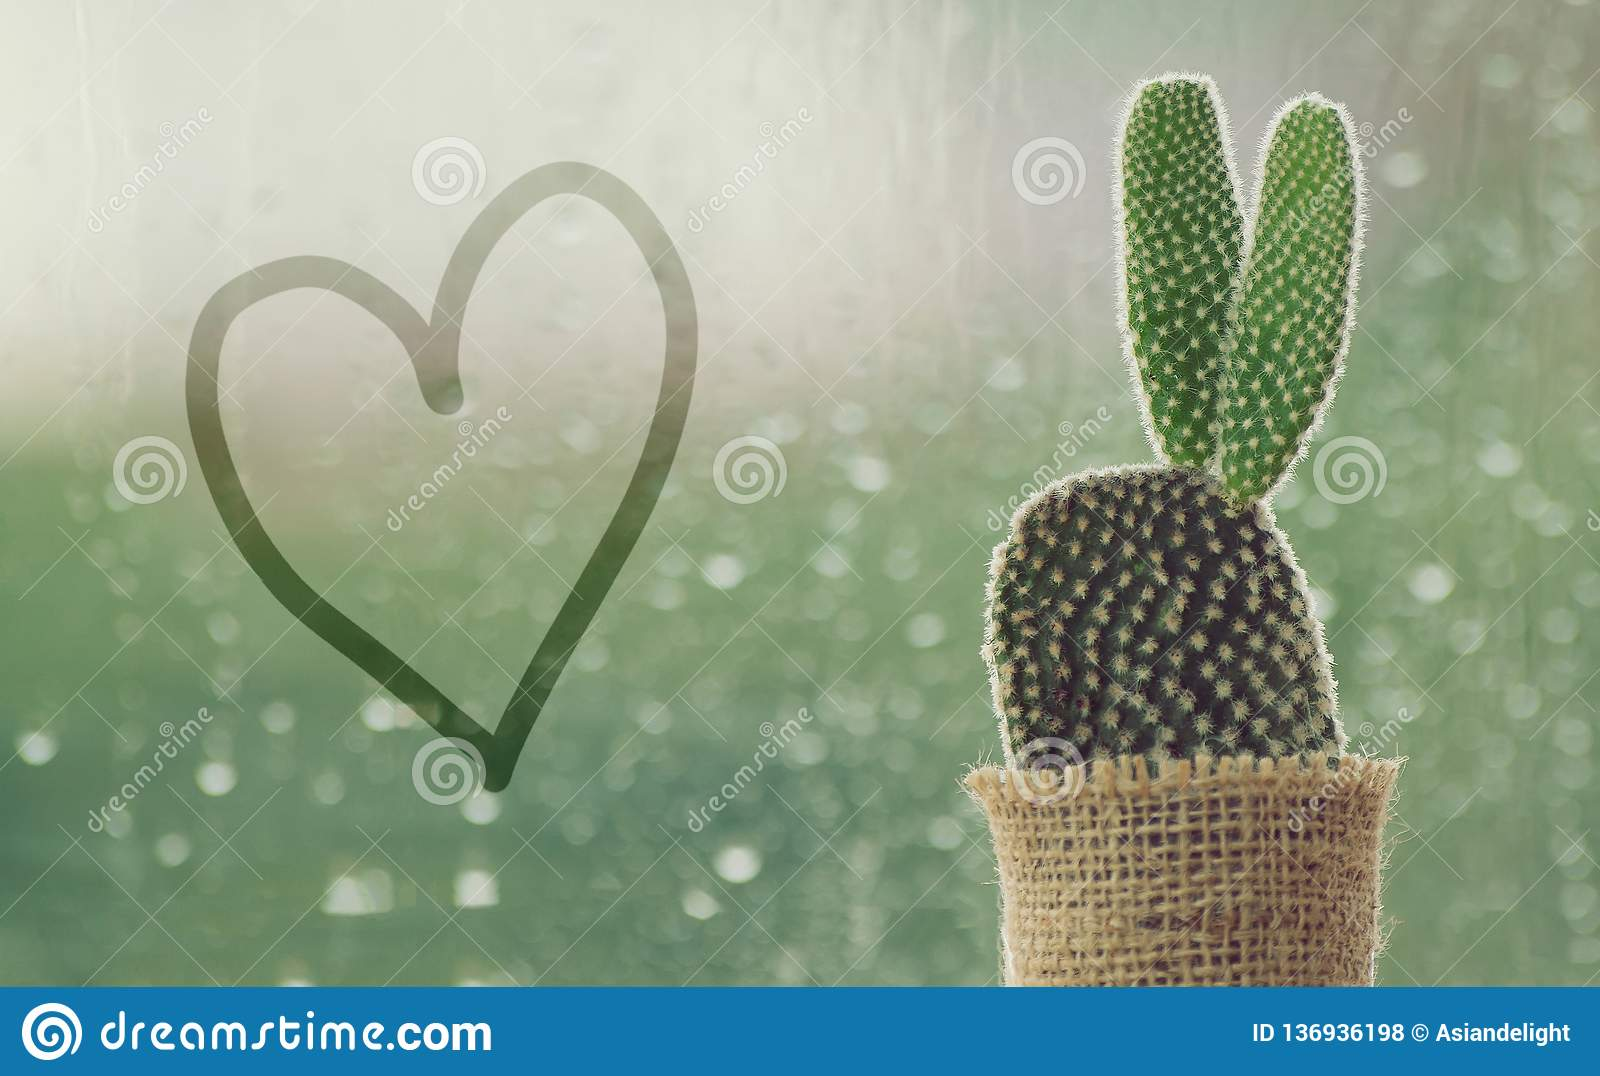 Cactus on a rainy day with handwriting heart shape on water drop at window background. drops of rain on window glass background